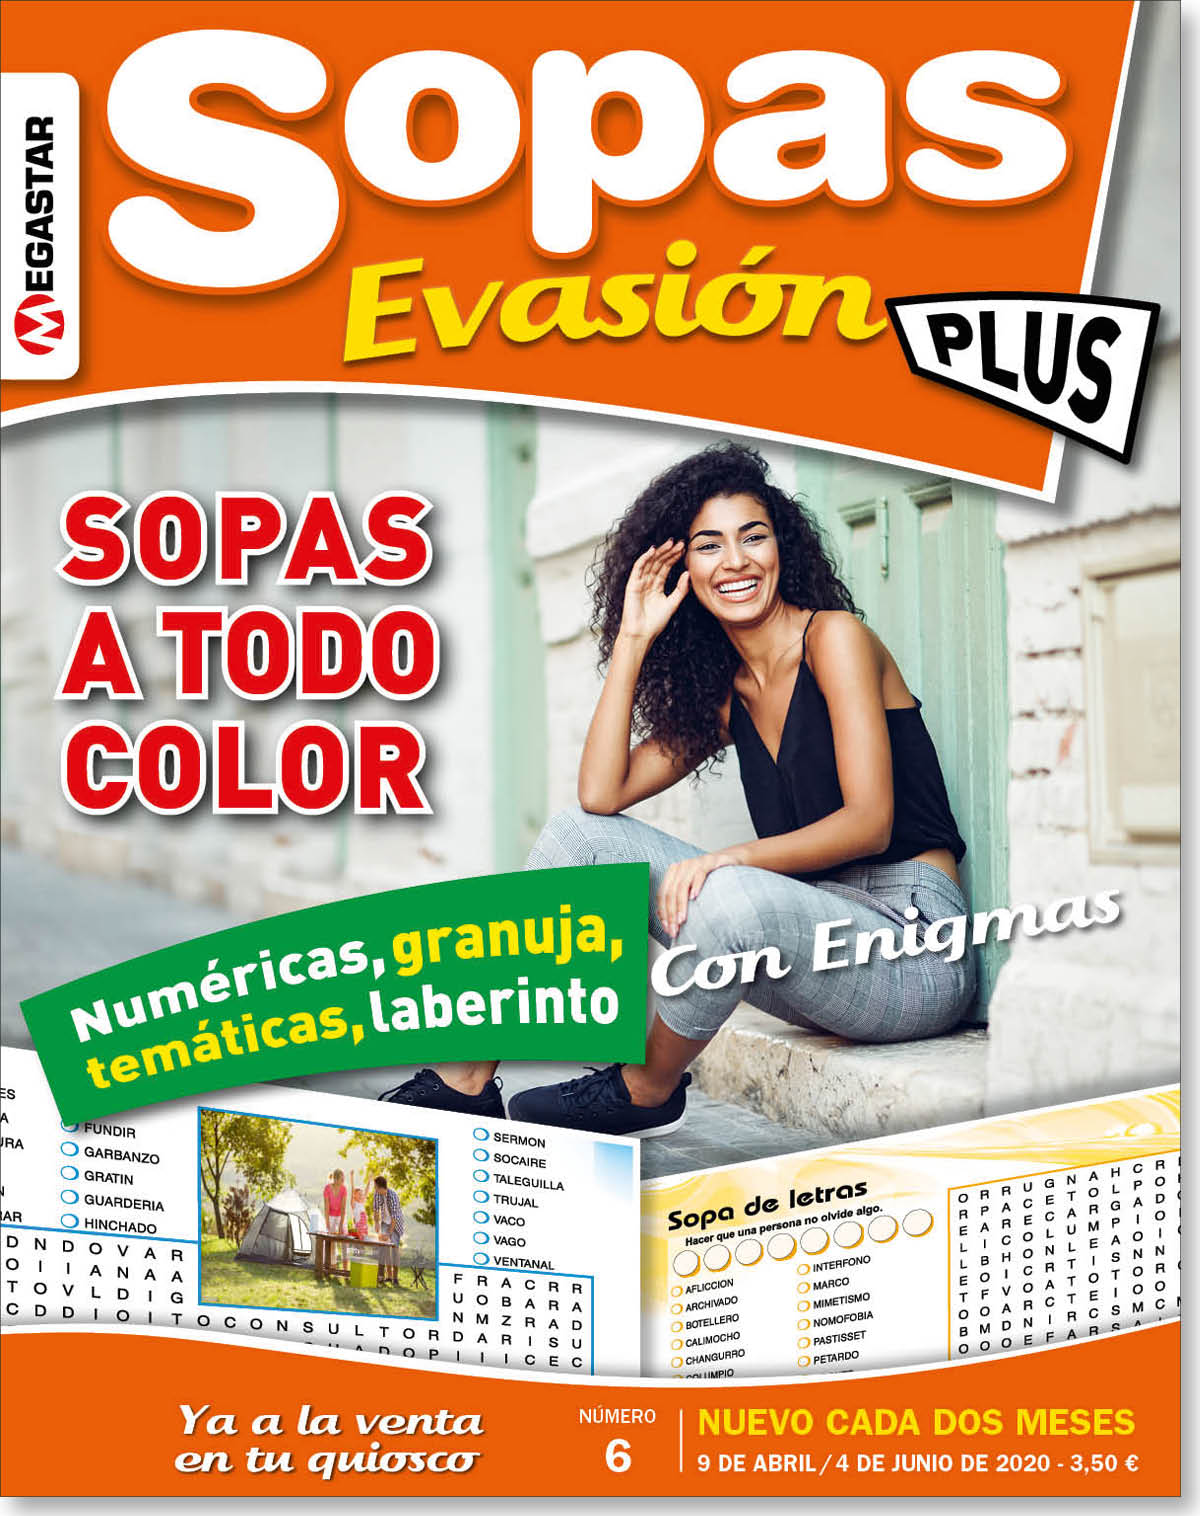 Sopas Evasión Plus (Nivel 1-3)